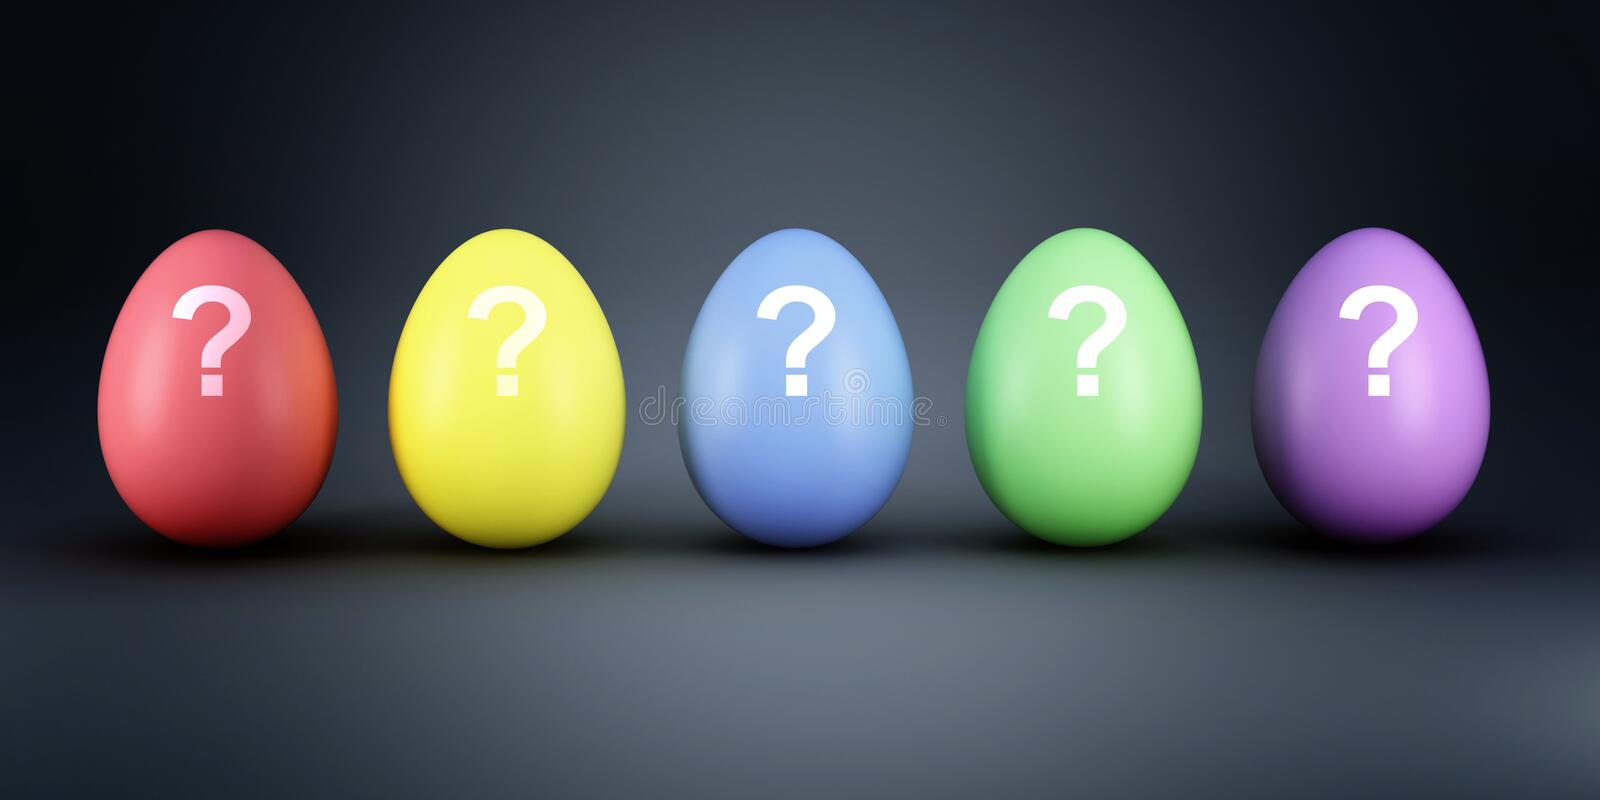 Download Colorful eggs mistery stock illustration. Image of illustration - 18478986